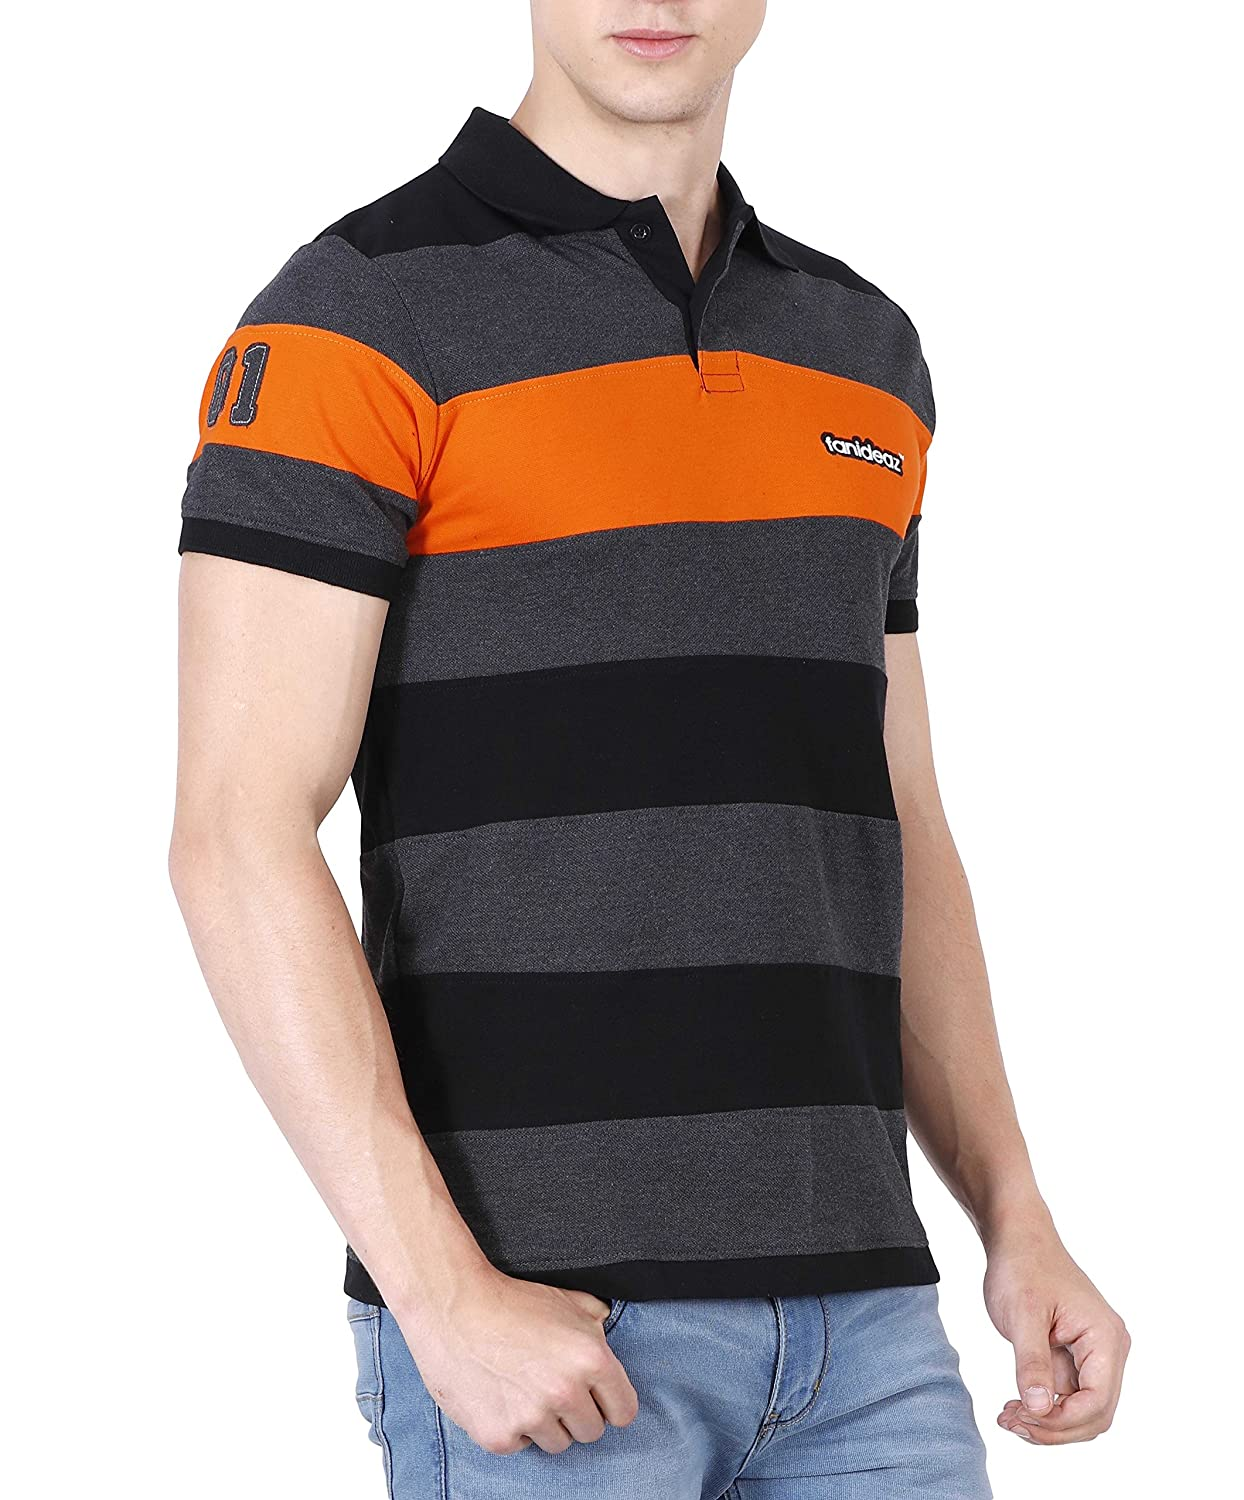 Design your t shirt india - Fanideaz Men S Half Sleeve Royal Striped Polo T Shirt With No 1 Applique